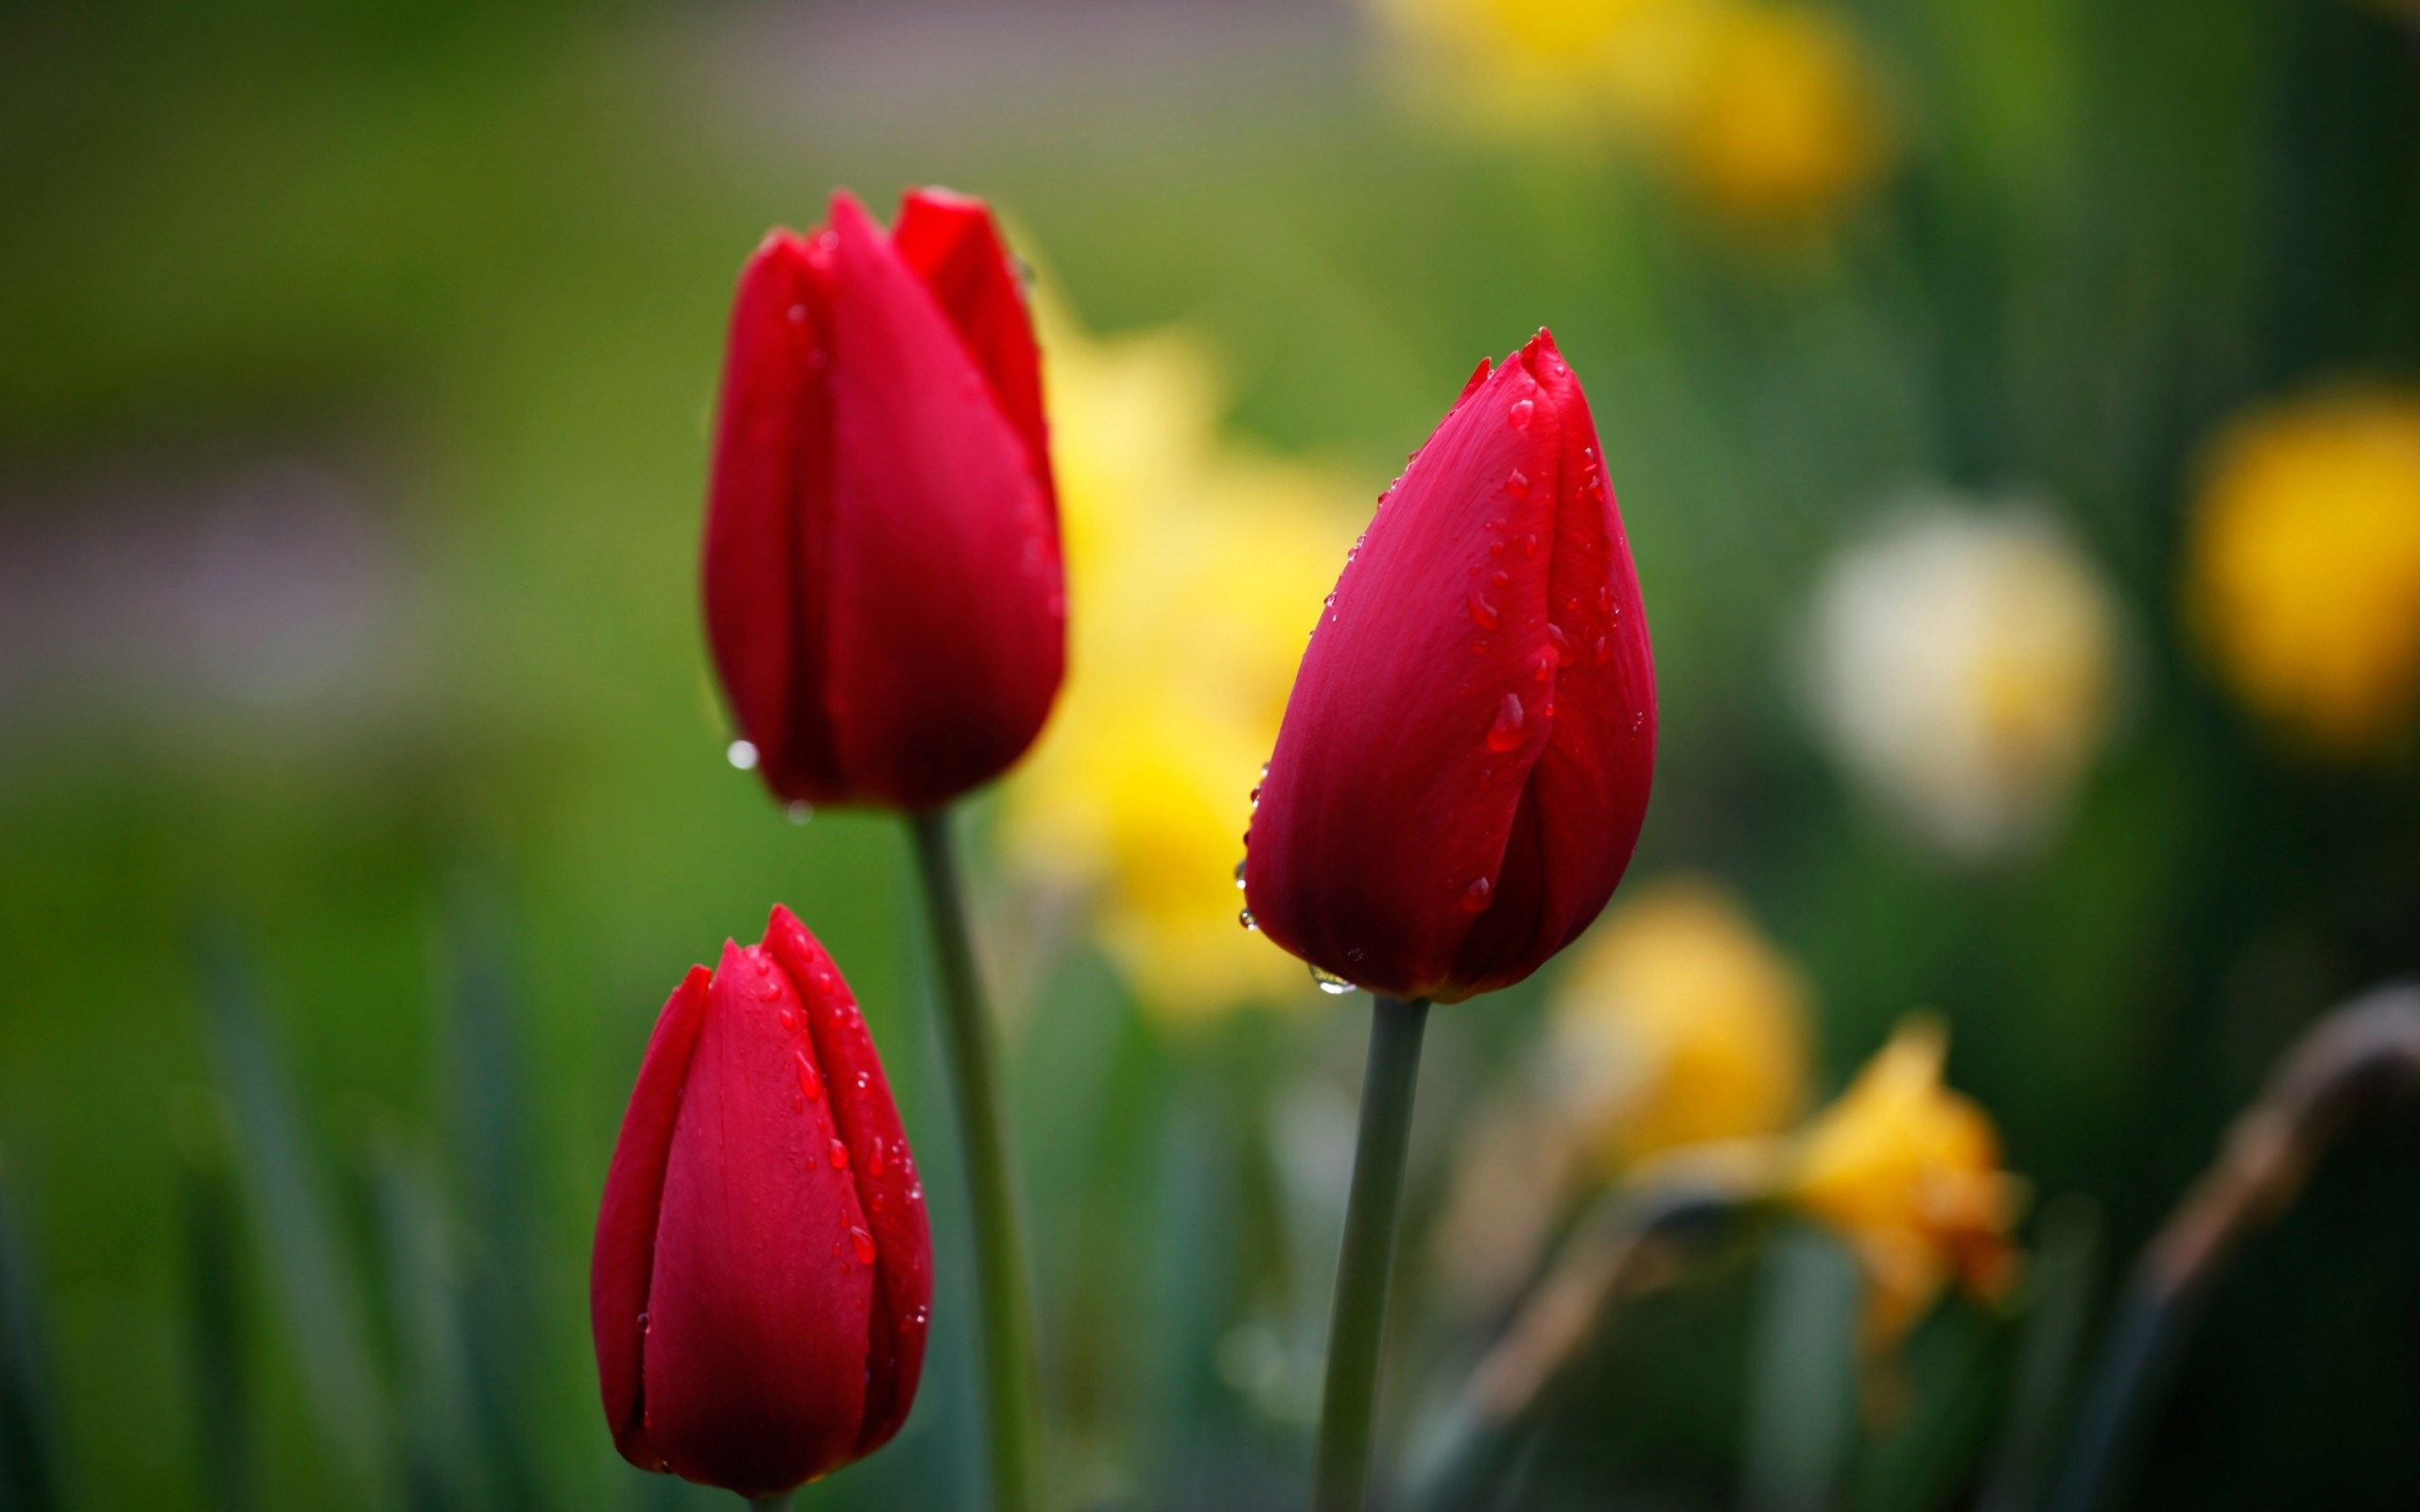 Pin By Randsarhan On Flowers In 2020 Flower Seeds Wallpaper Nature Flowers Red Tulips